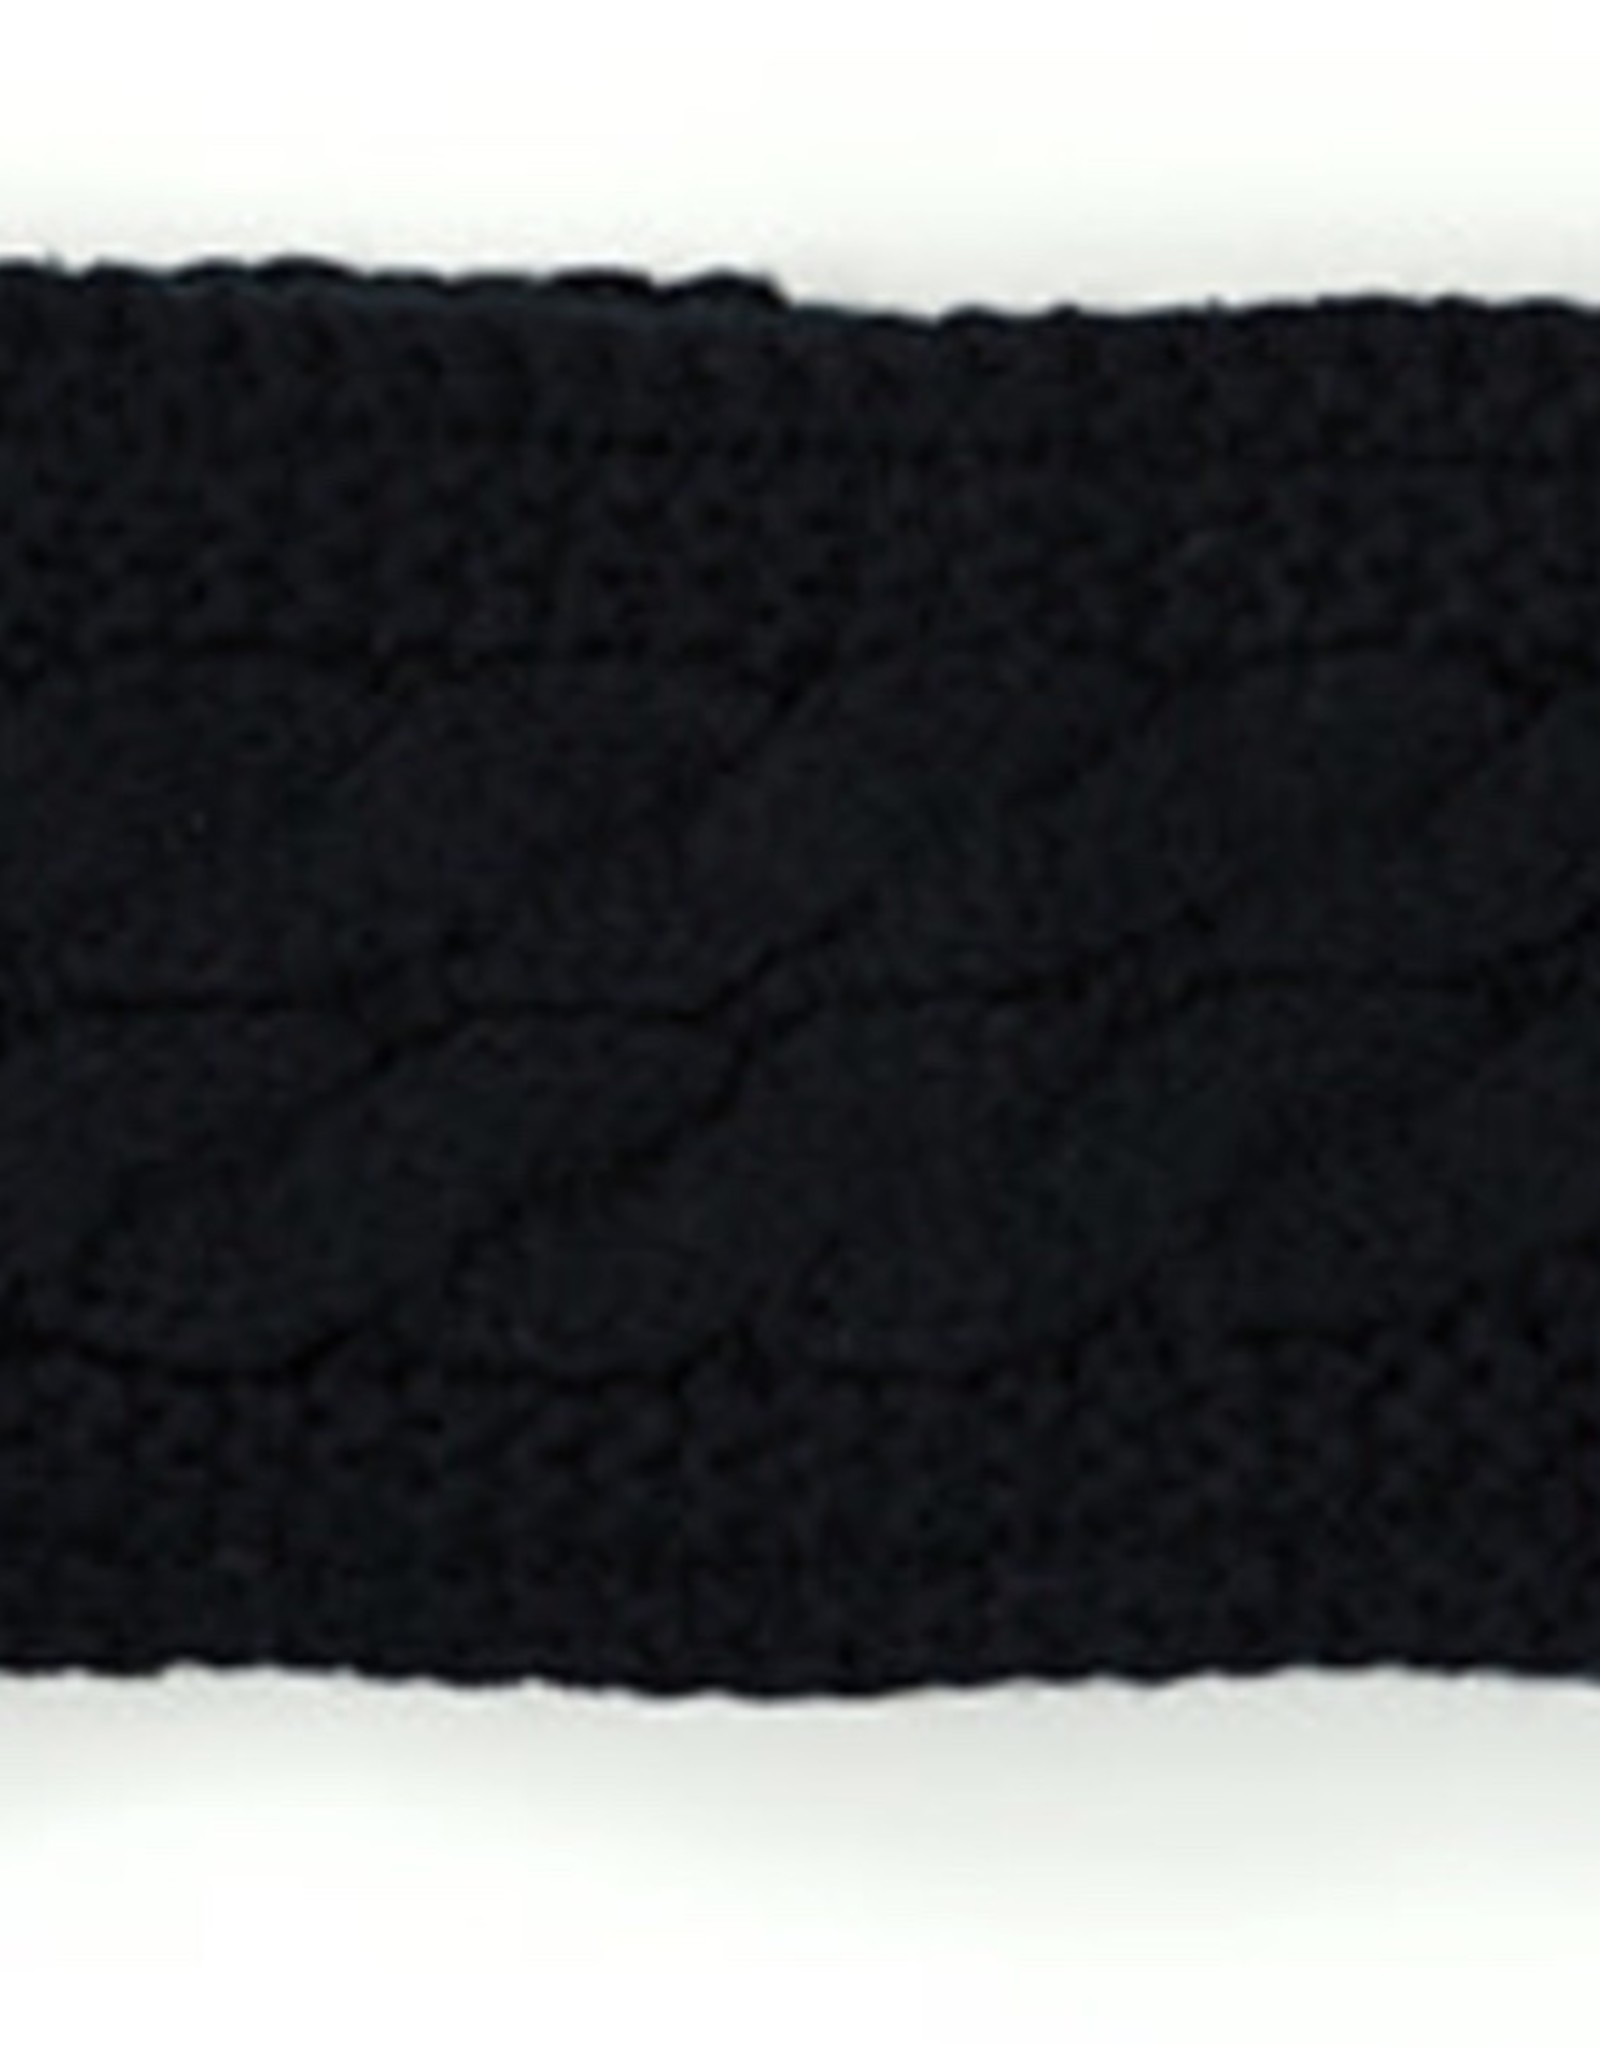 D.M. MERCHANDISING INC. Winter Headbands